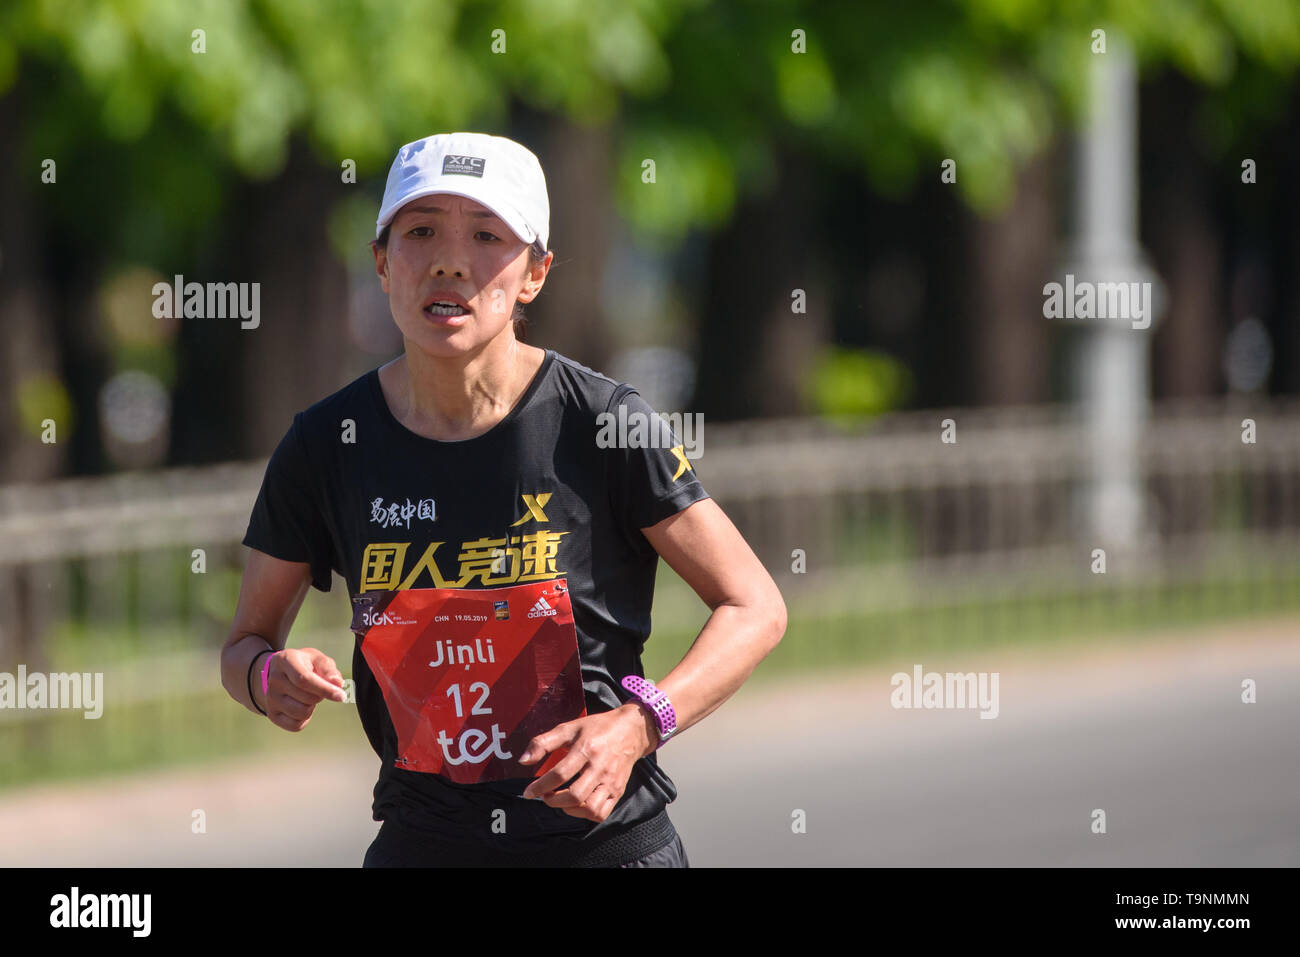 19.05.2019. RIGA, LATVIA. Yinli He, during  TET RIGA MARATHON 2019. The only IAAF Gold Label marathon in Northern Europe. Stock Photo